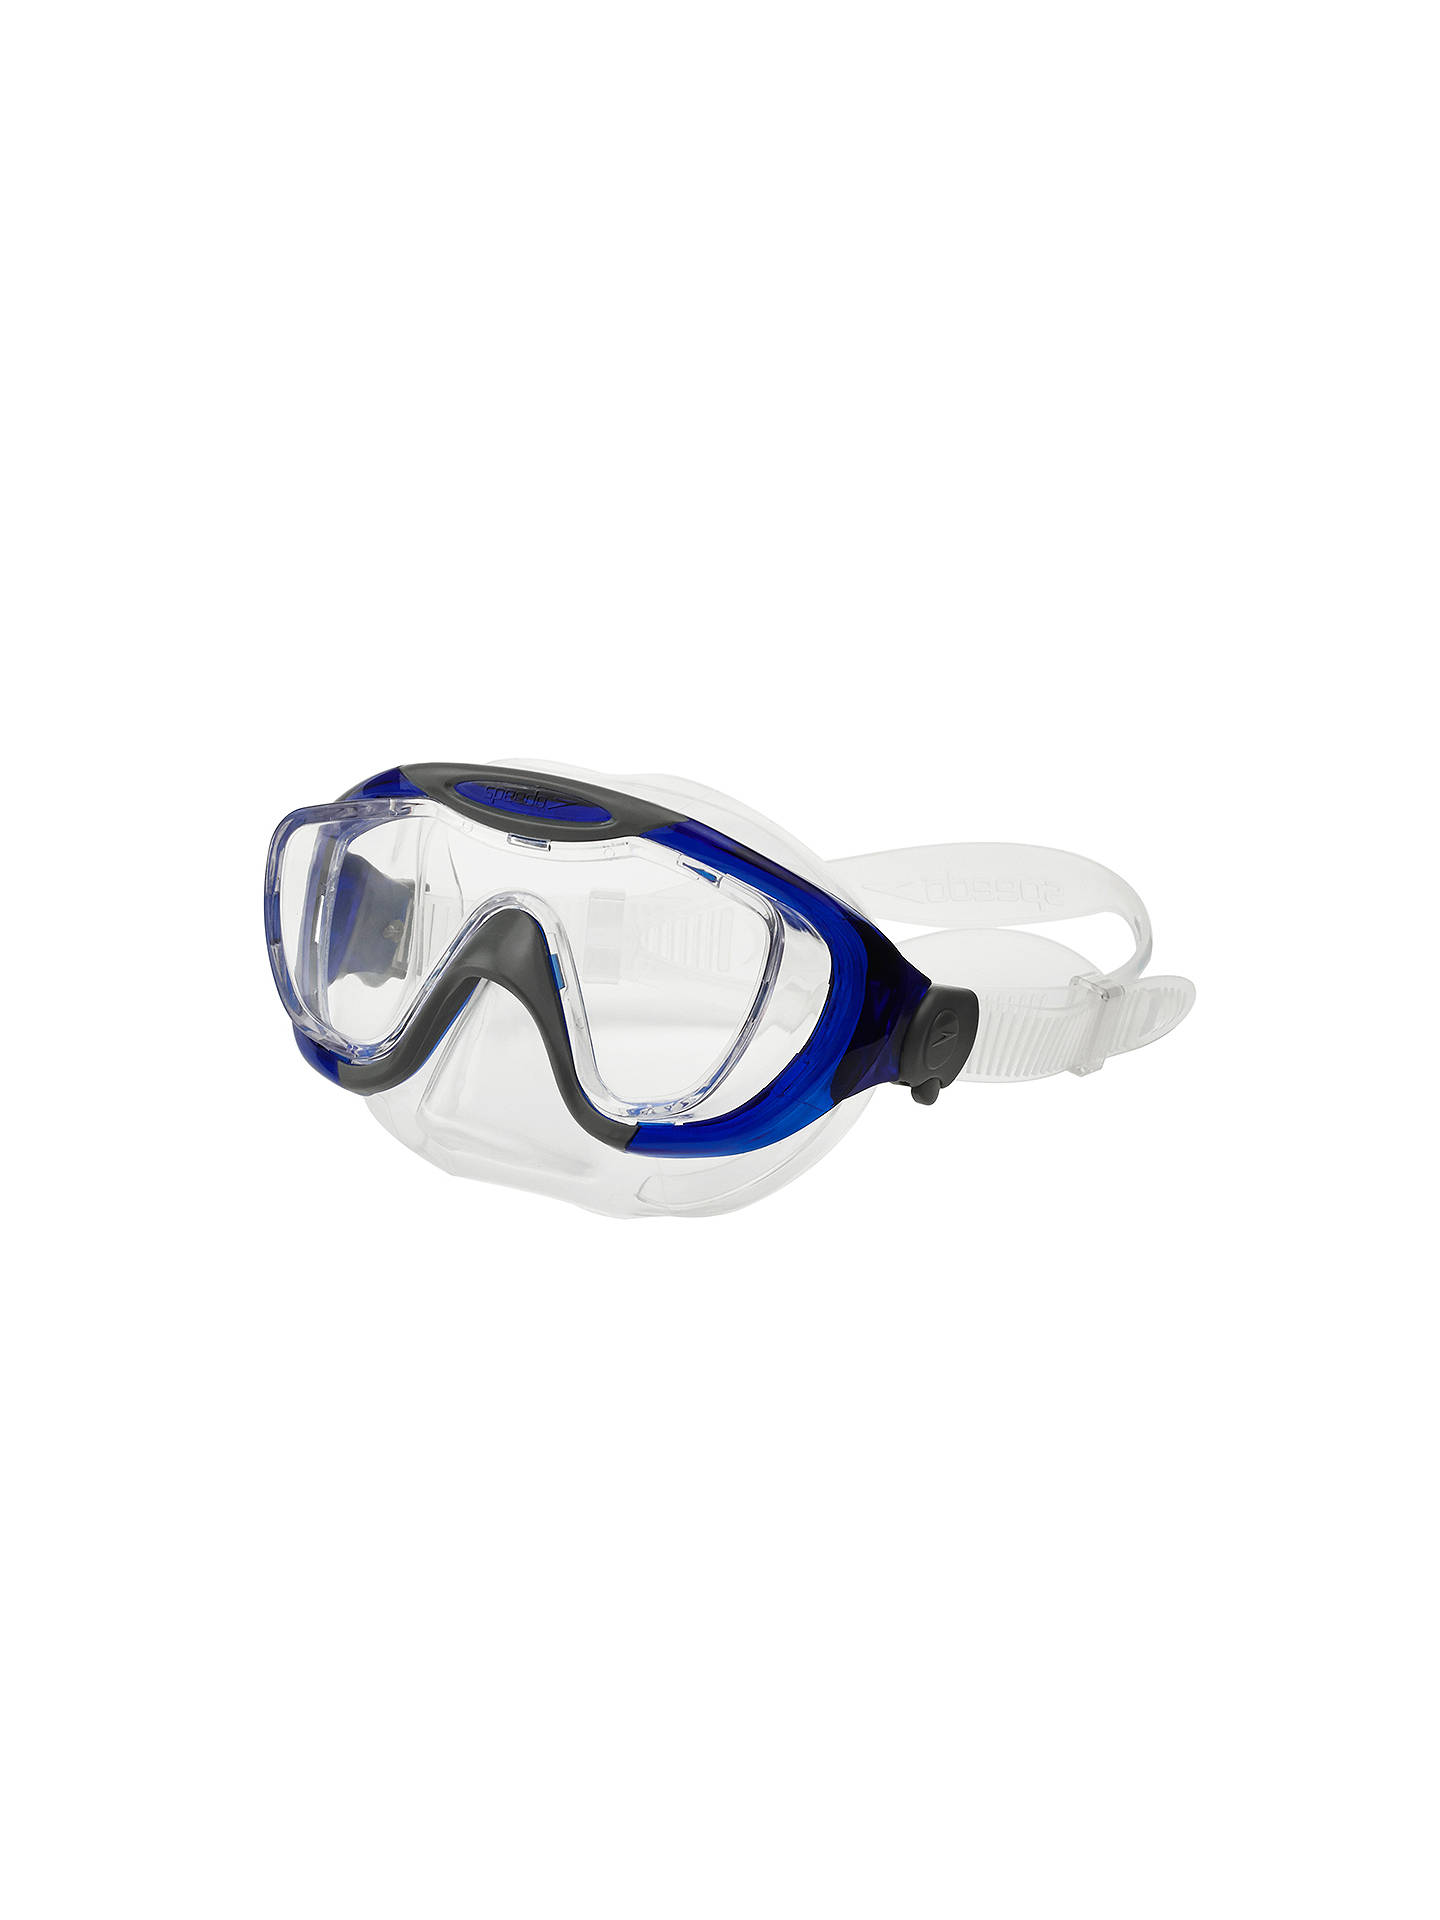 bf65a56e ... Buy Speedo Glide Mask & Snorkel Set, One Size Online at johnlewis. ...